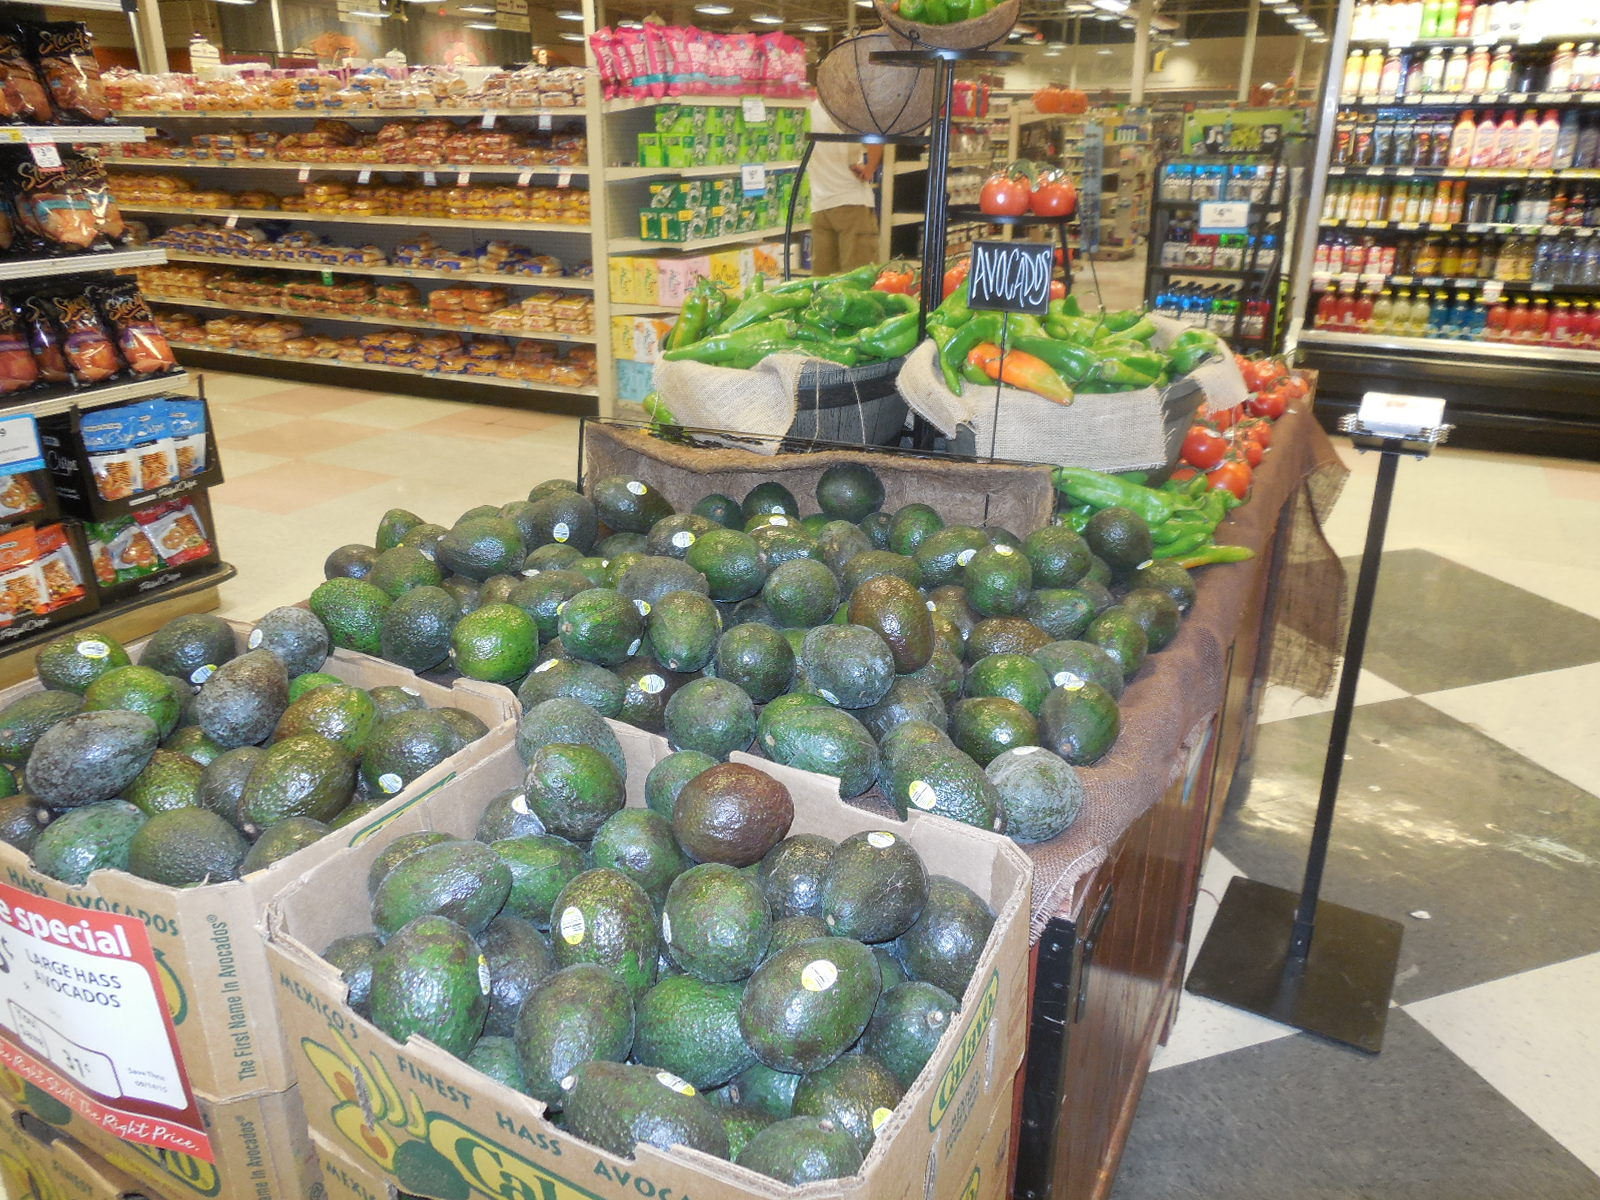 CA Avocado Commission Kicks Off American Summer Holidays Program